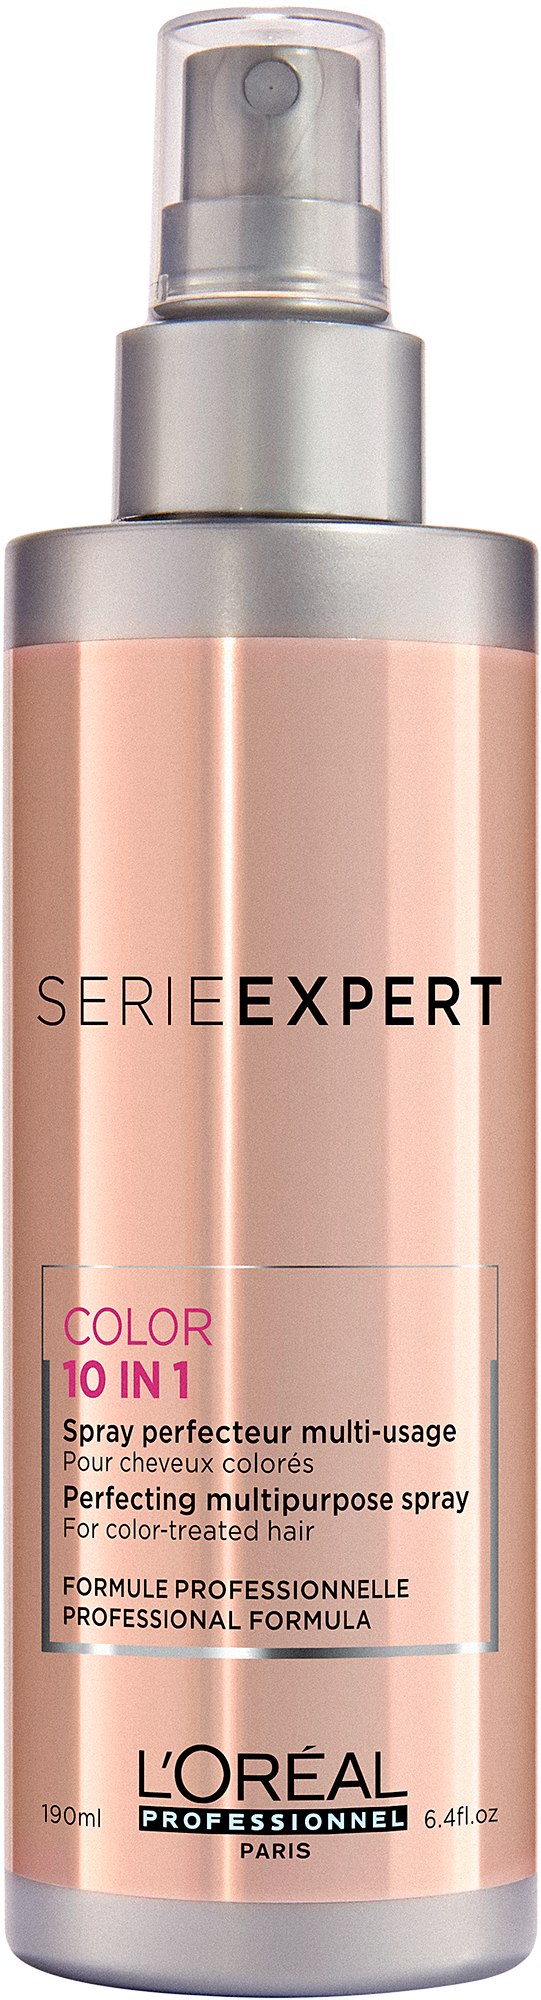 L'Oréal Serie Expert Vitamino A-OX Color Infinite 10-in-1 Spray 190mL